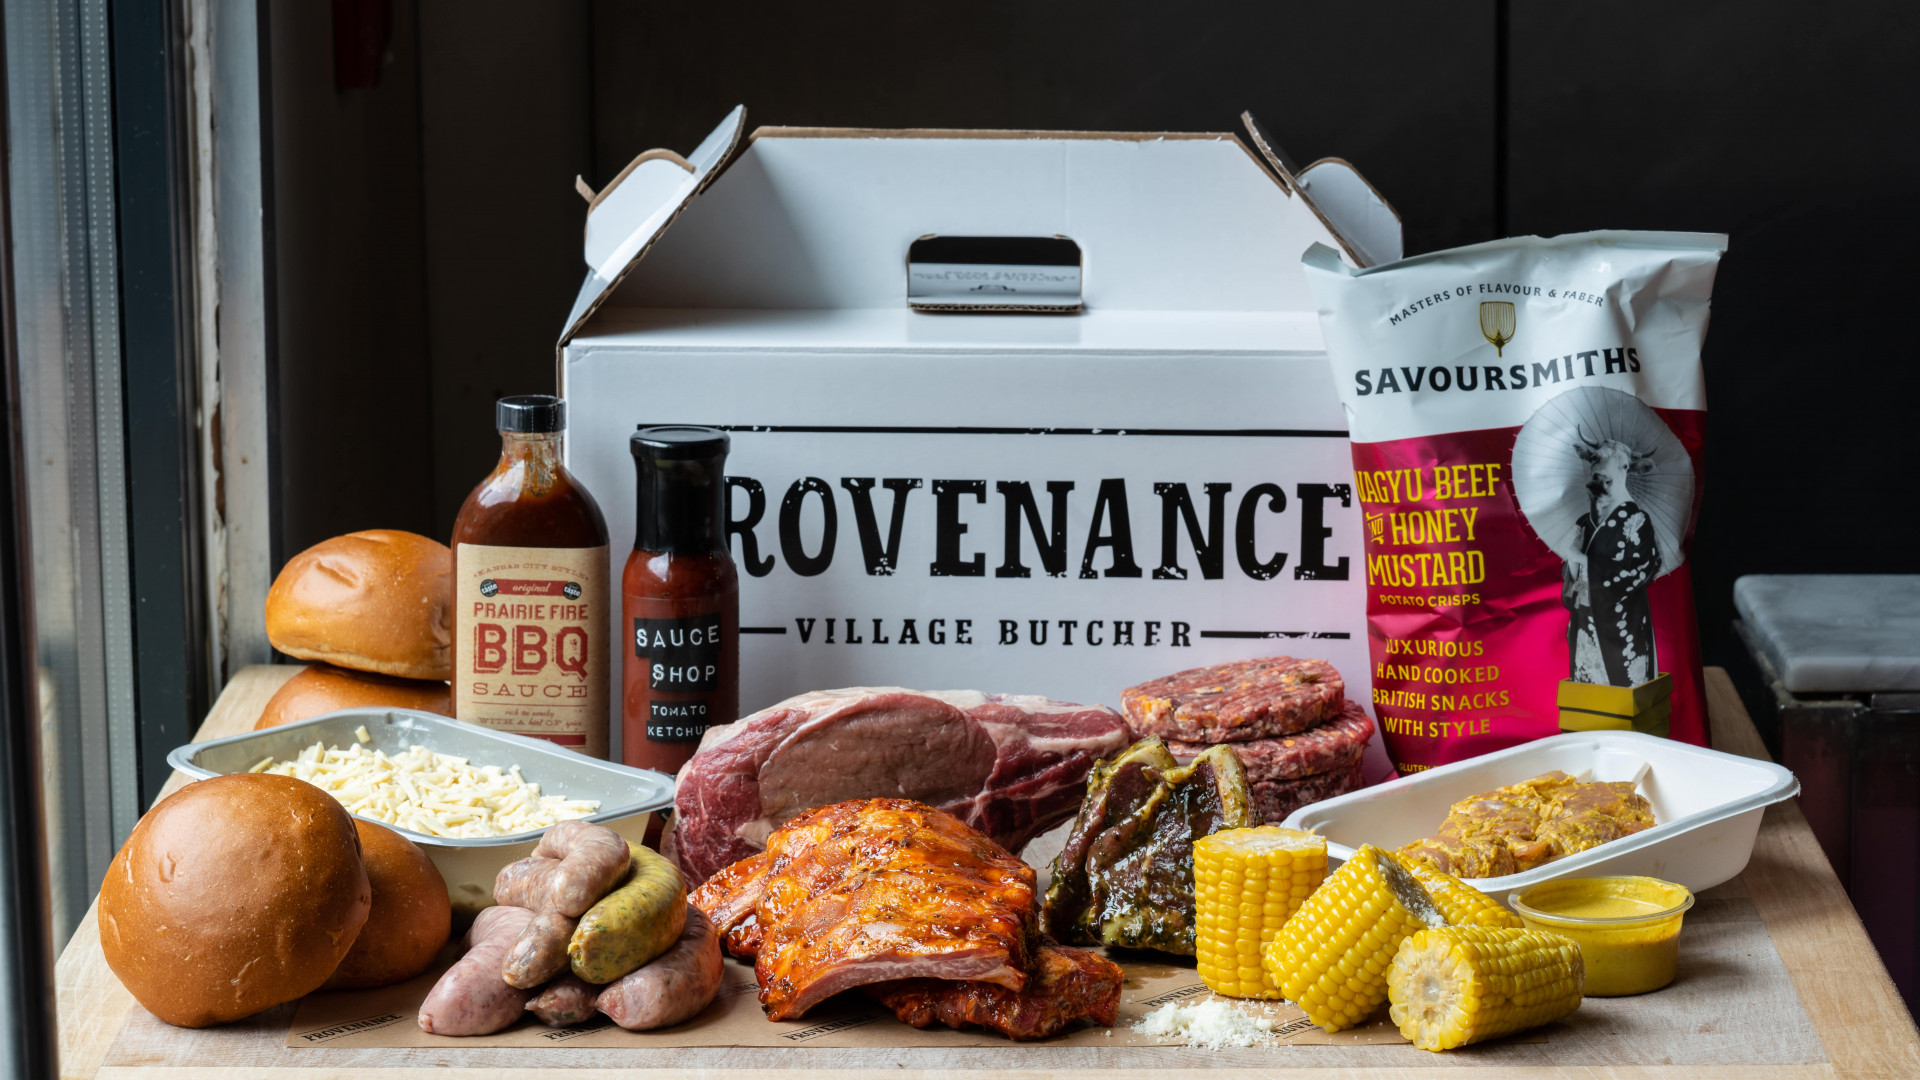 This is a photo of the Father's Day BBQ Box from West London butchers, Provenance Village Butcher.